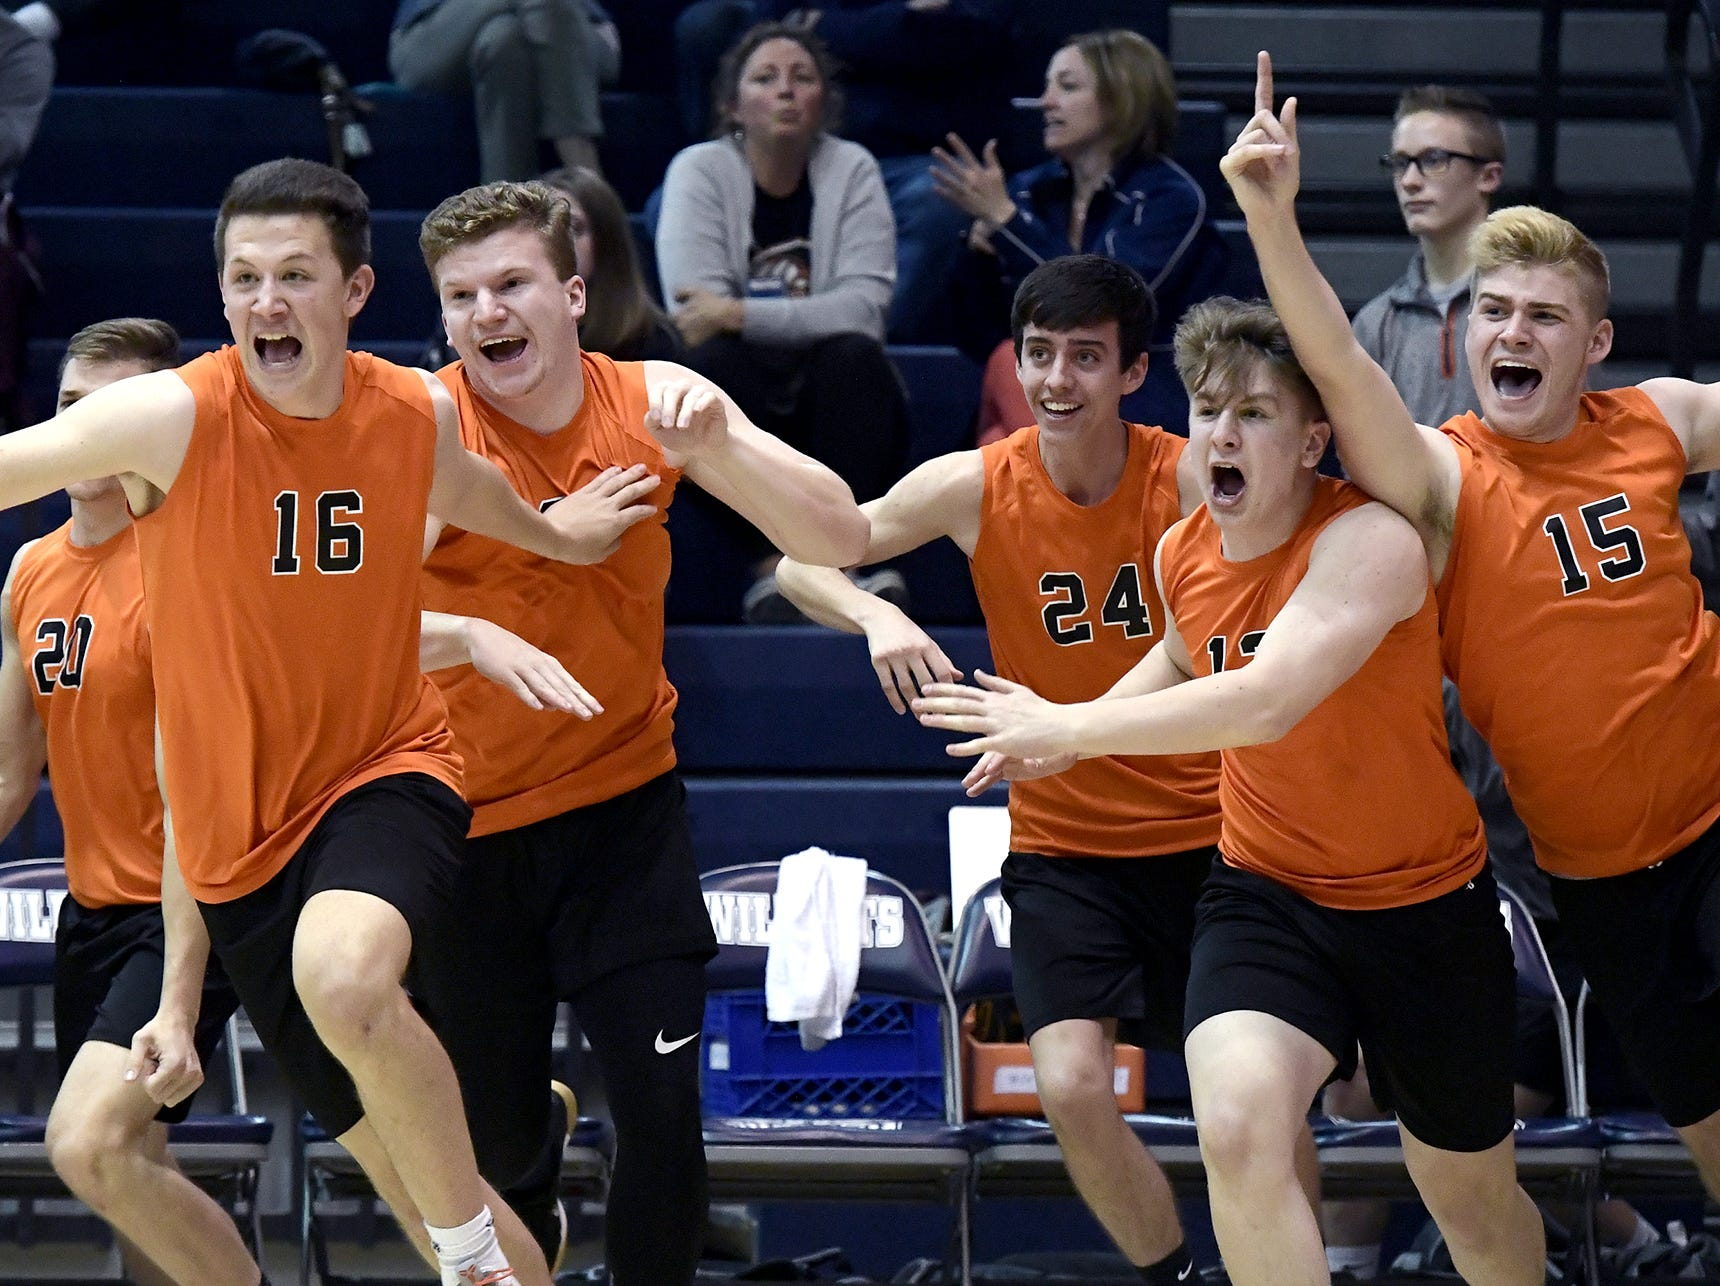 Northeastern's bench clears to celebrate the winning point over Central York in the York-Adams boys' volleyball championship match at Dallastown Tuesday, May 14, 2019. Bill Kalina photo